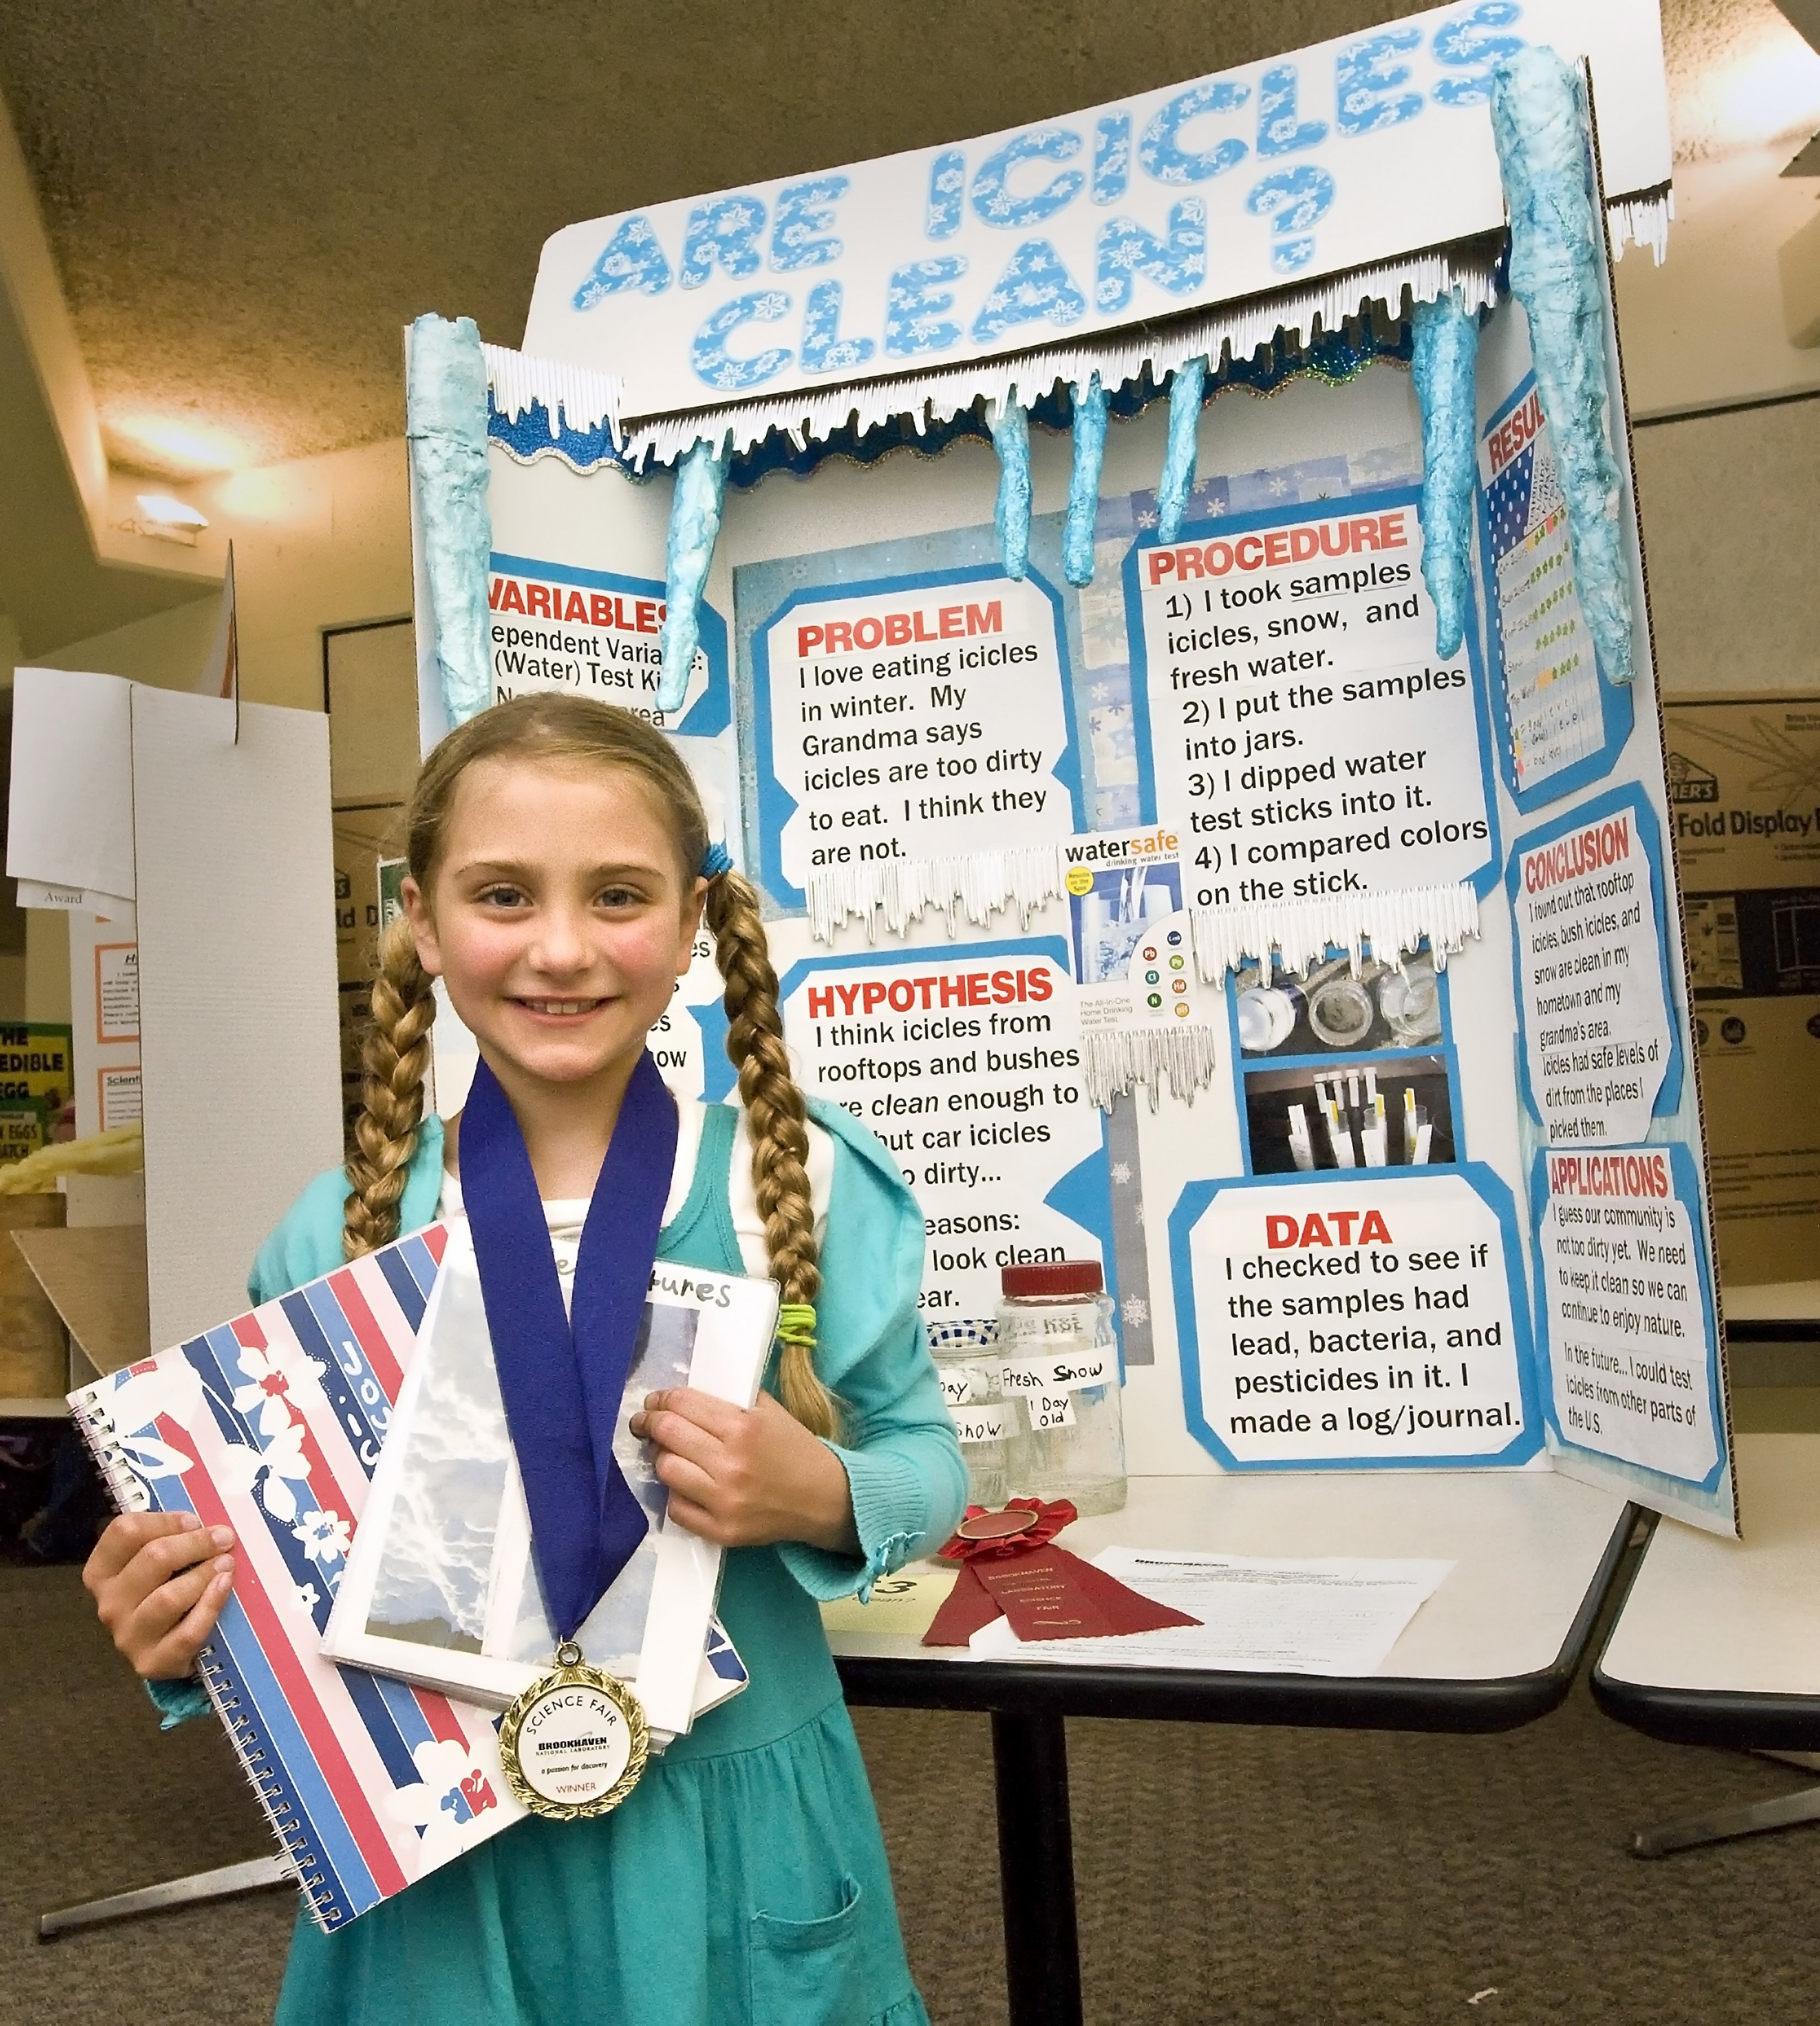 10 Great Science Fair Ideas 4Th Grade from ant control to wind energy winning projects at brookhaven 22